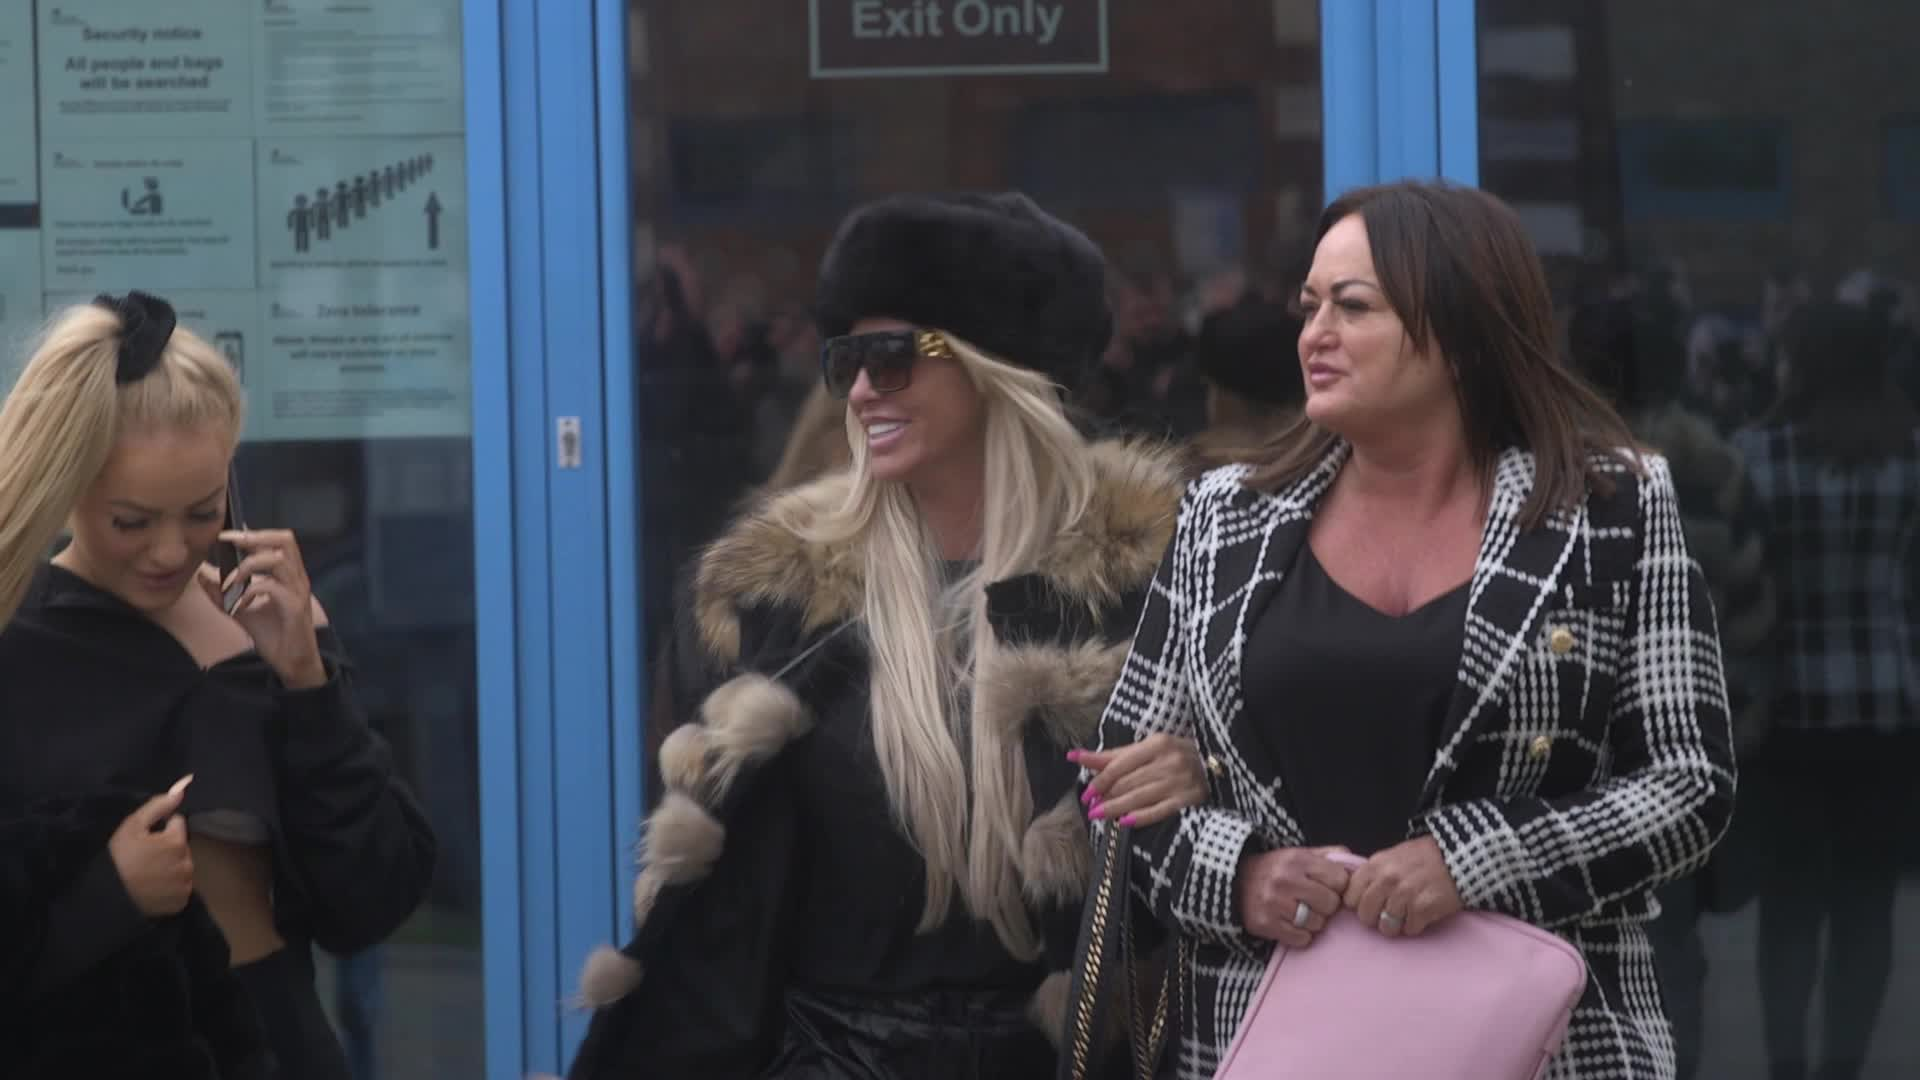 Katie Price To Stand Trial Over Accusations Of Shouting Abuse Outside School